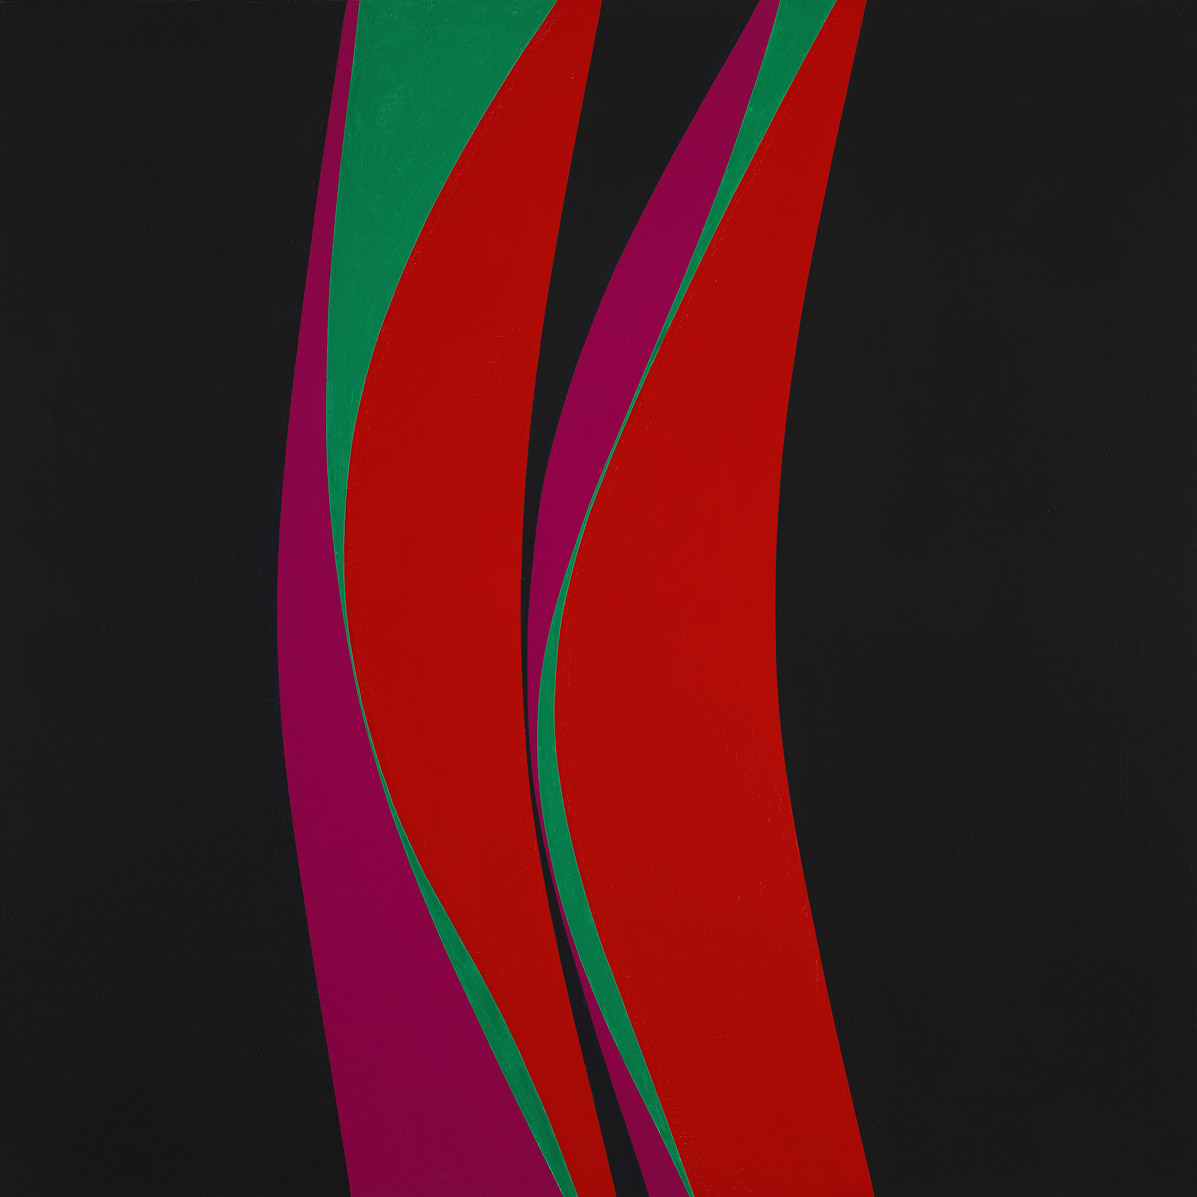 Untitled (February 4) , 1967 oil on canvas 60 x 60 inches; 152.4 x 152.4 centimeters